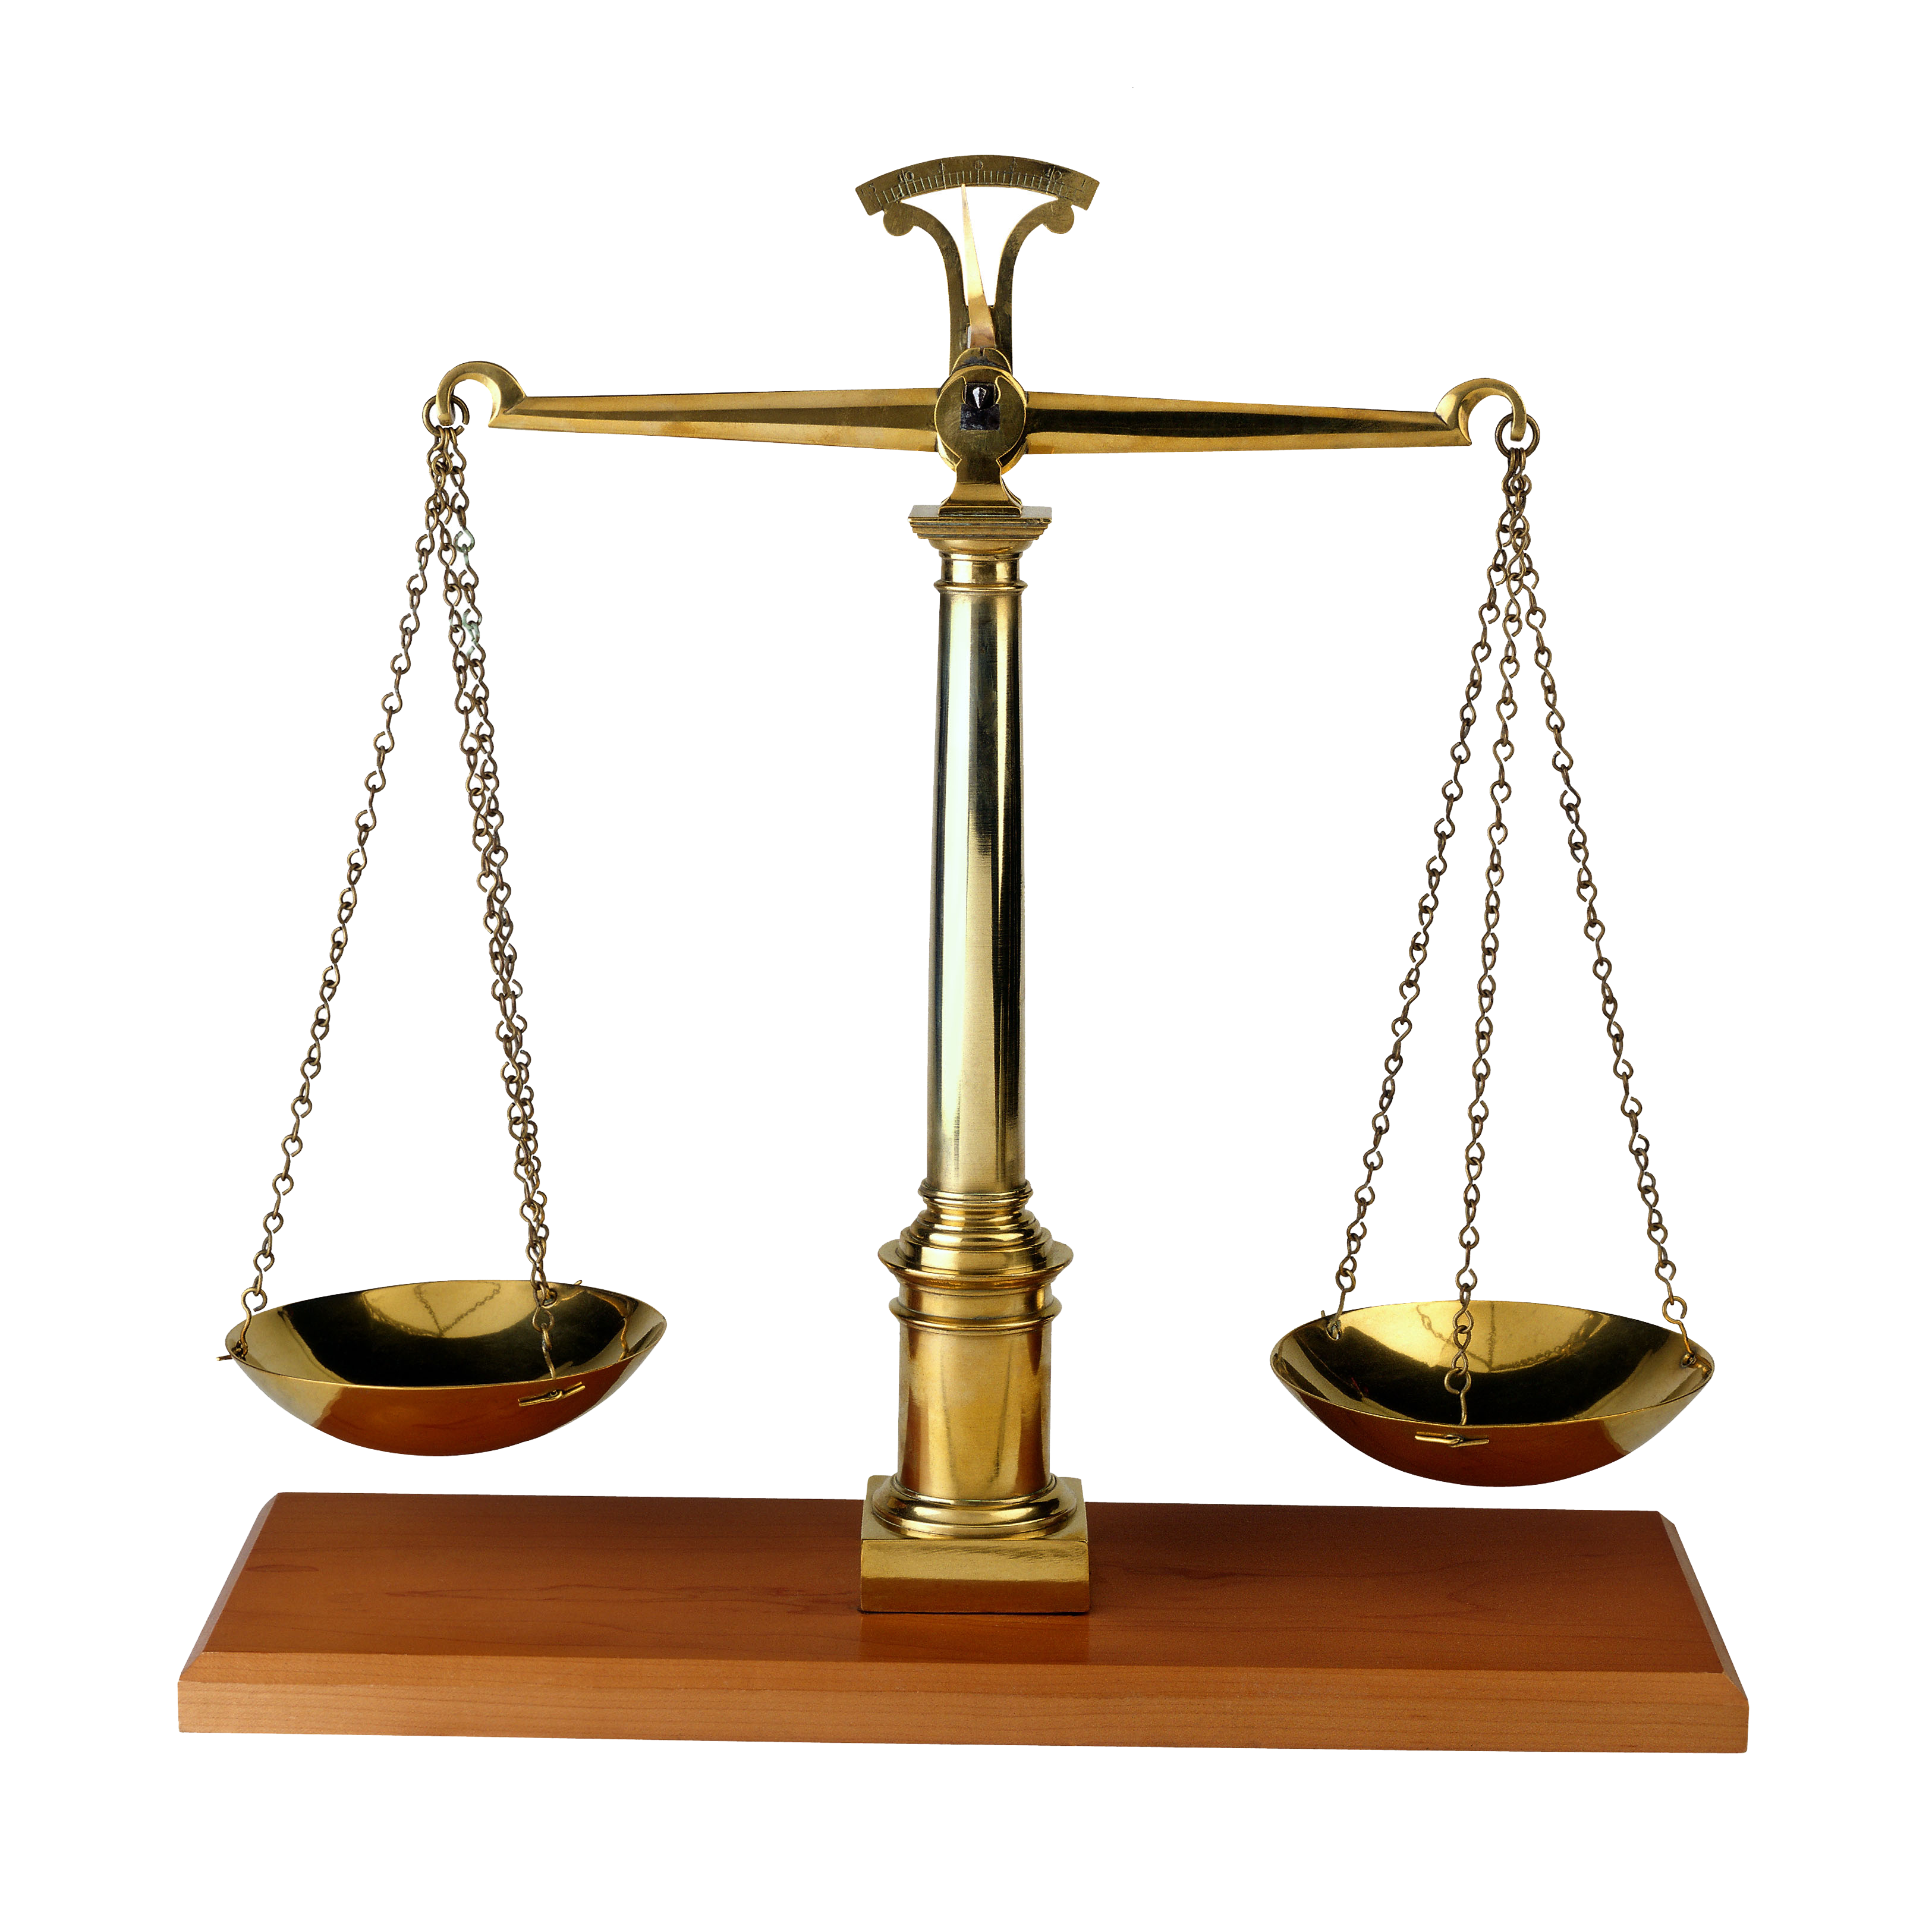 Law transparent weigher. Scales png images free